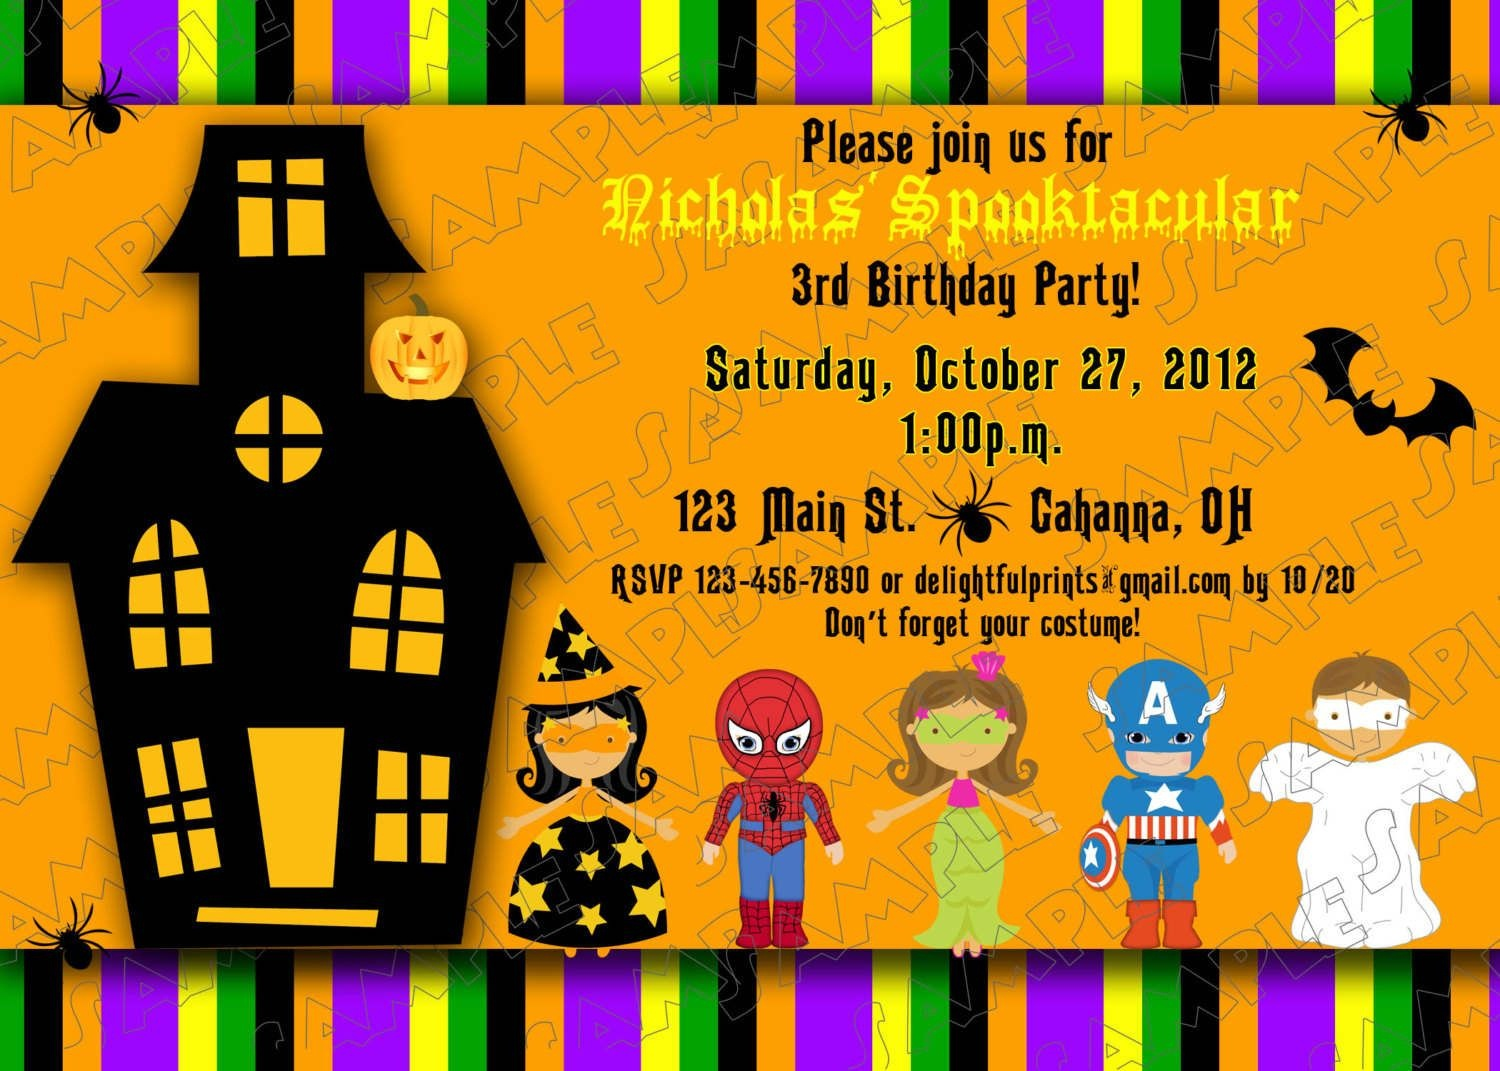 Halloween Kids Birthday Party Invitations | Printable Halloween - Free Printable Halloween Birthday Party Invitations